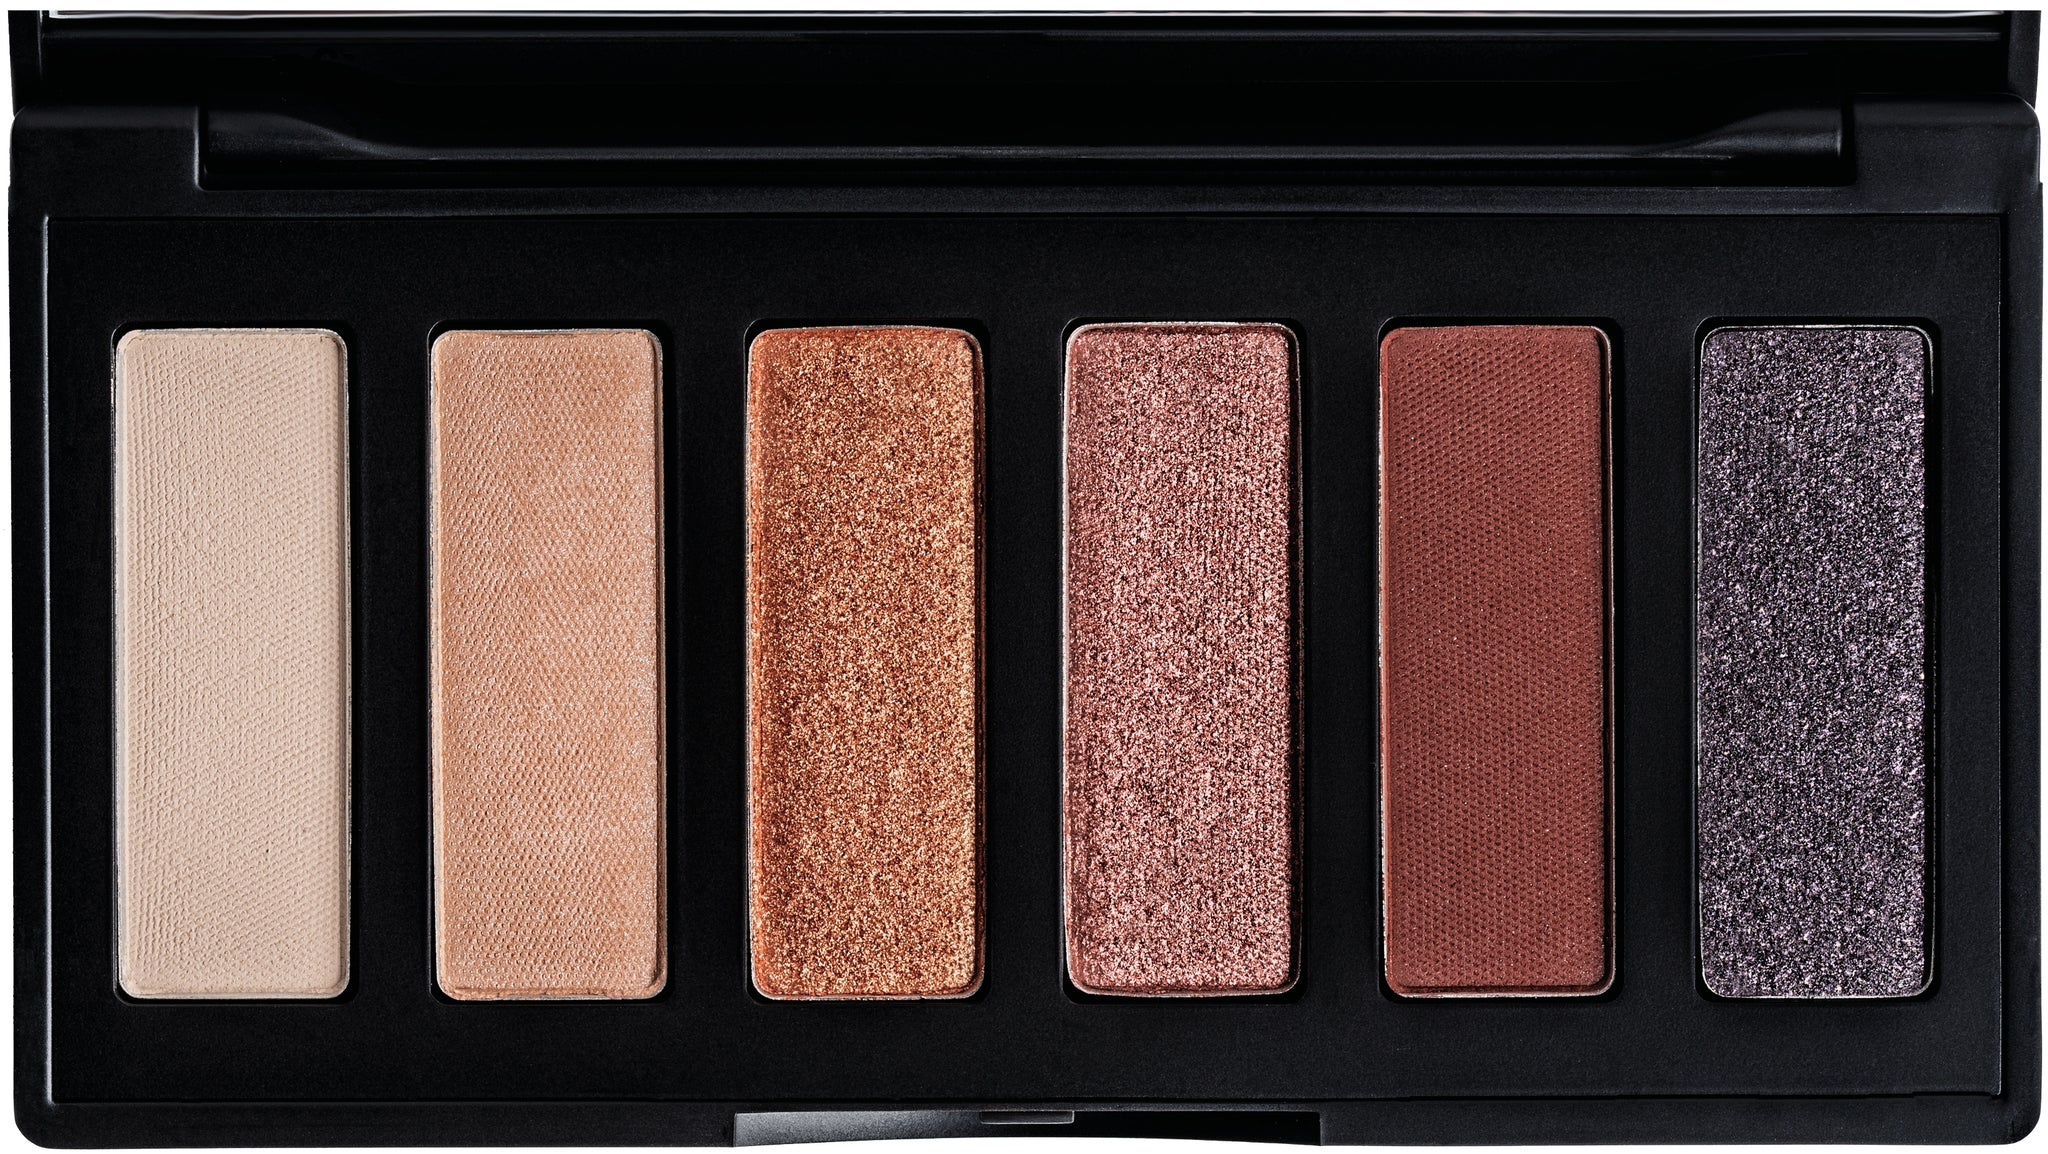 Iconoclast Eyeshadow Palette in Shade Burnt Sienna